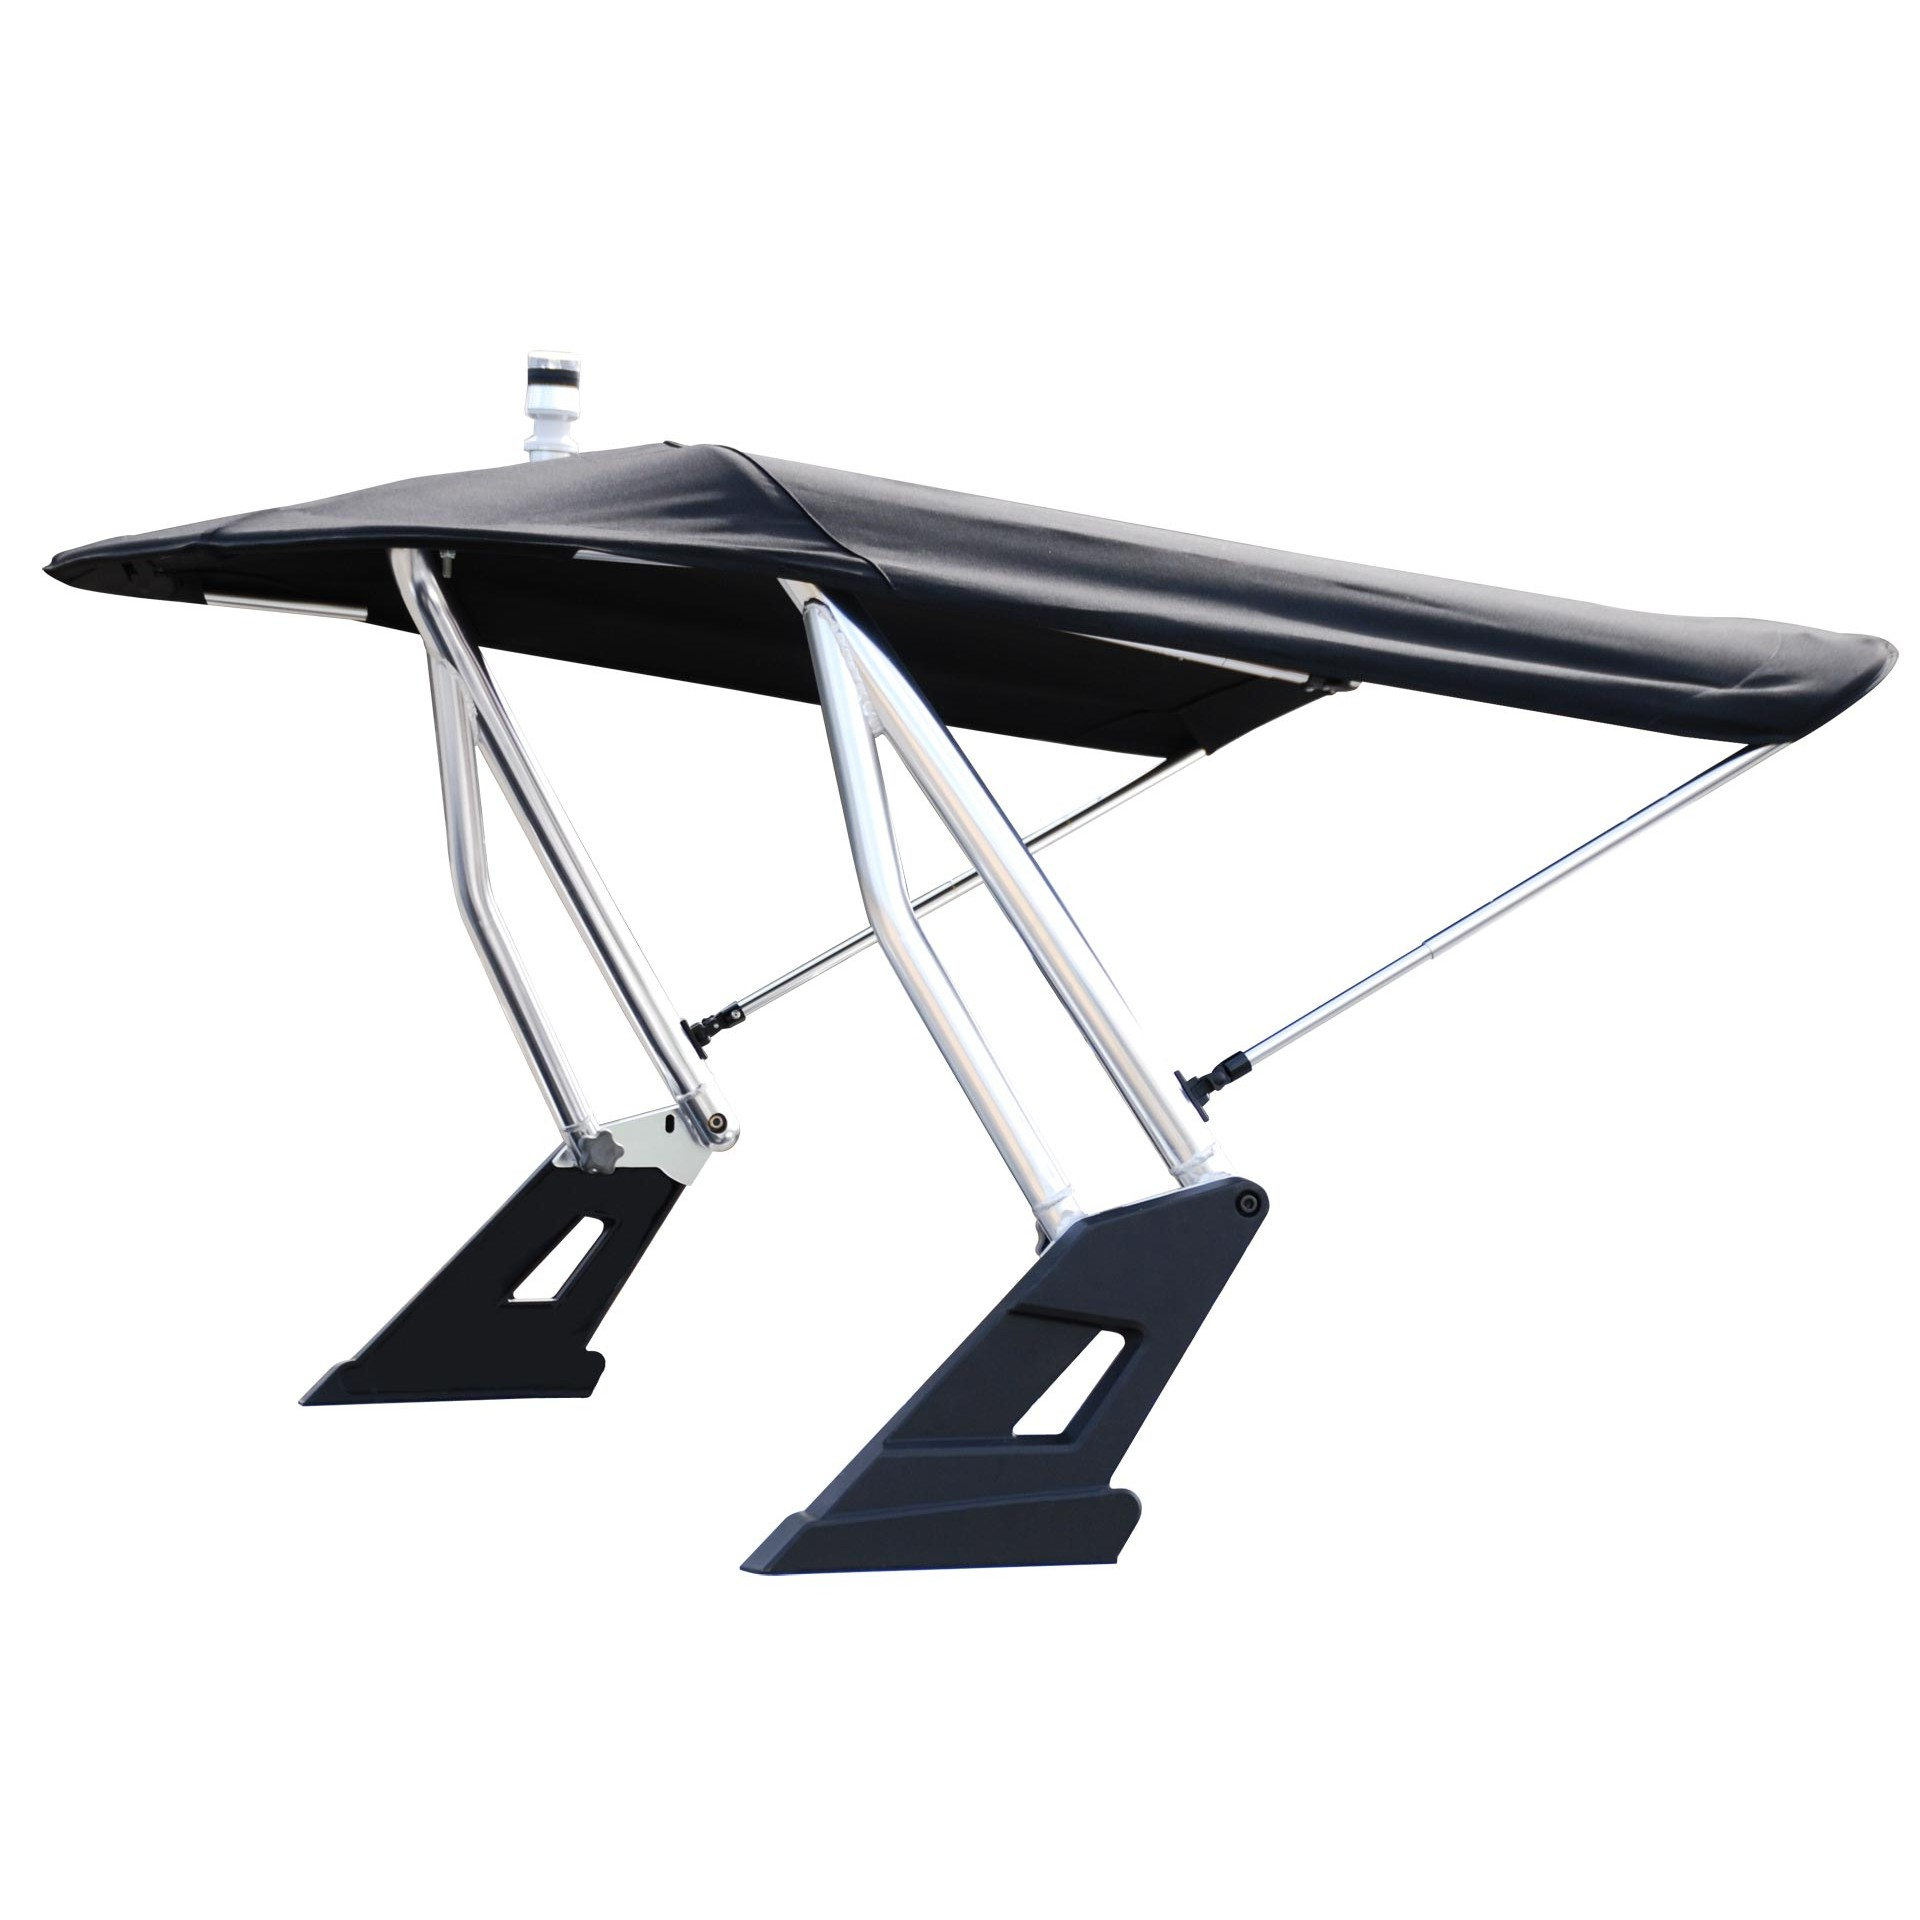 OVER THE TOP BIMINI - BLACK - HS-1 SMALL (193-208CM) MONSTER TOWER 2018